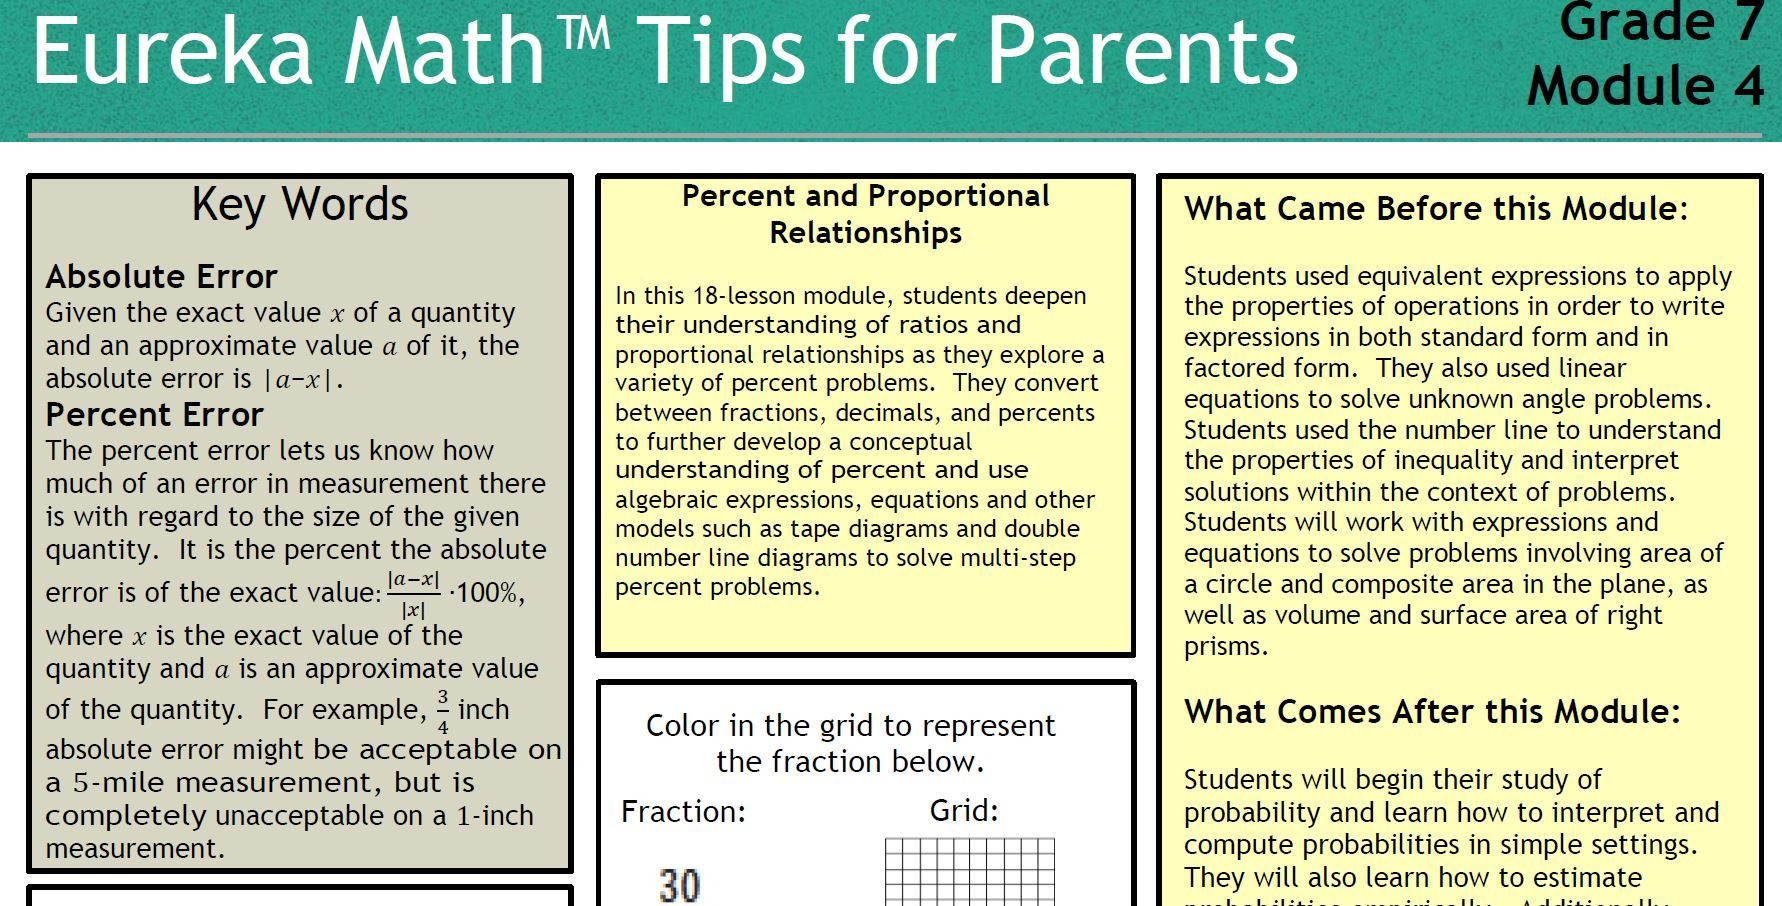 This Is A Resource That Will Guide Parents As They Work To